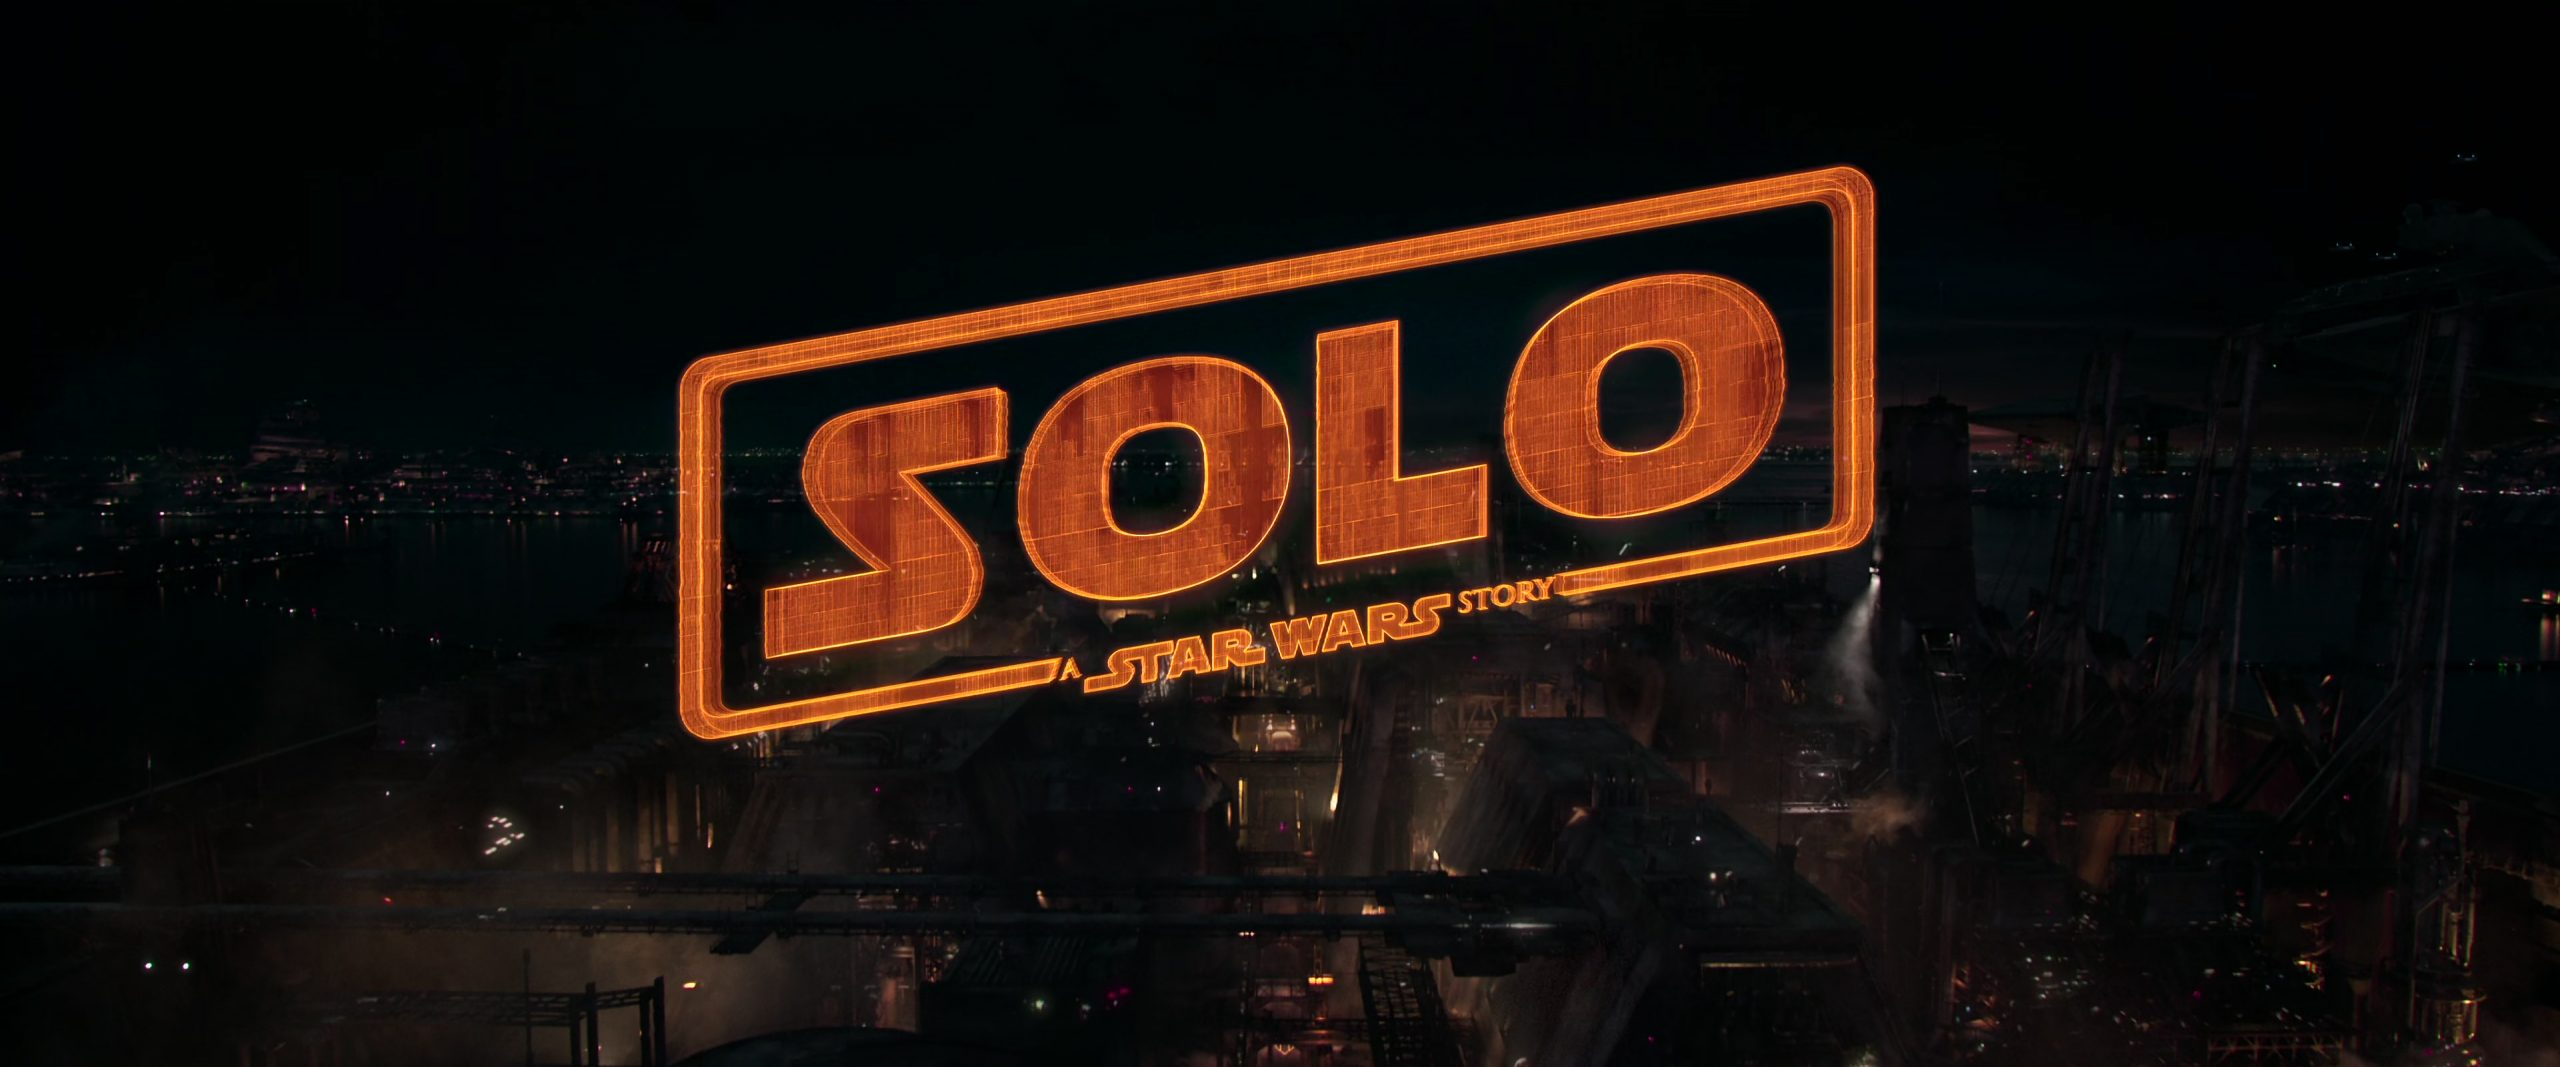 Solo: A Star Wars Story (2018) [4K]